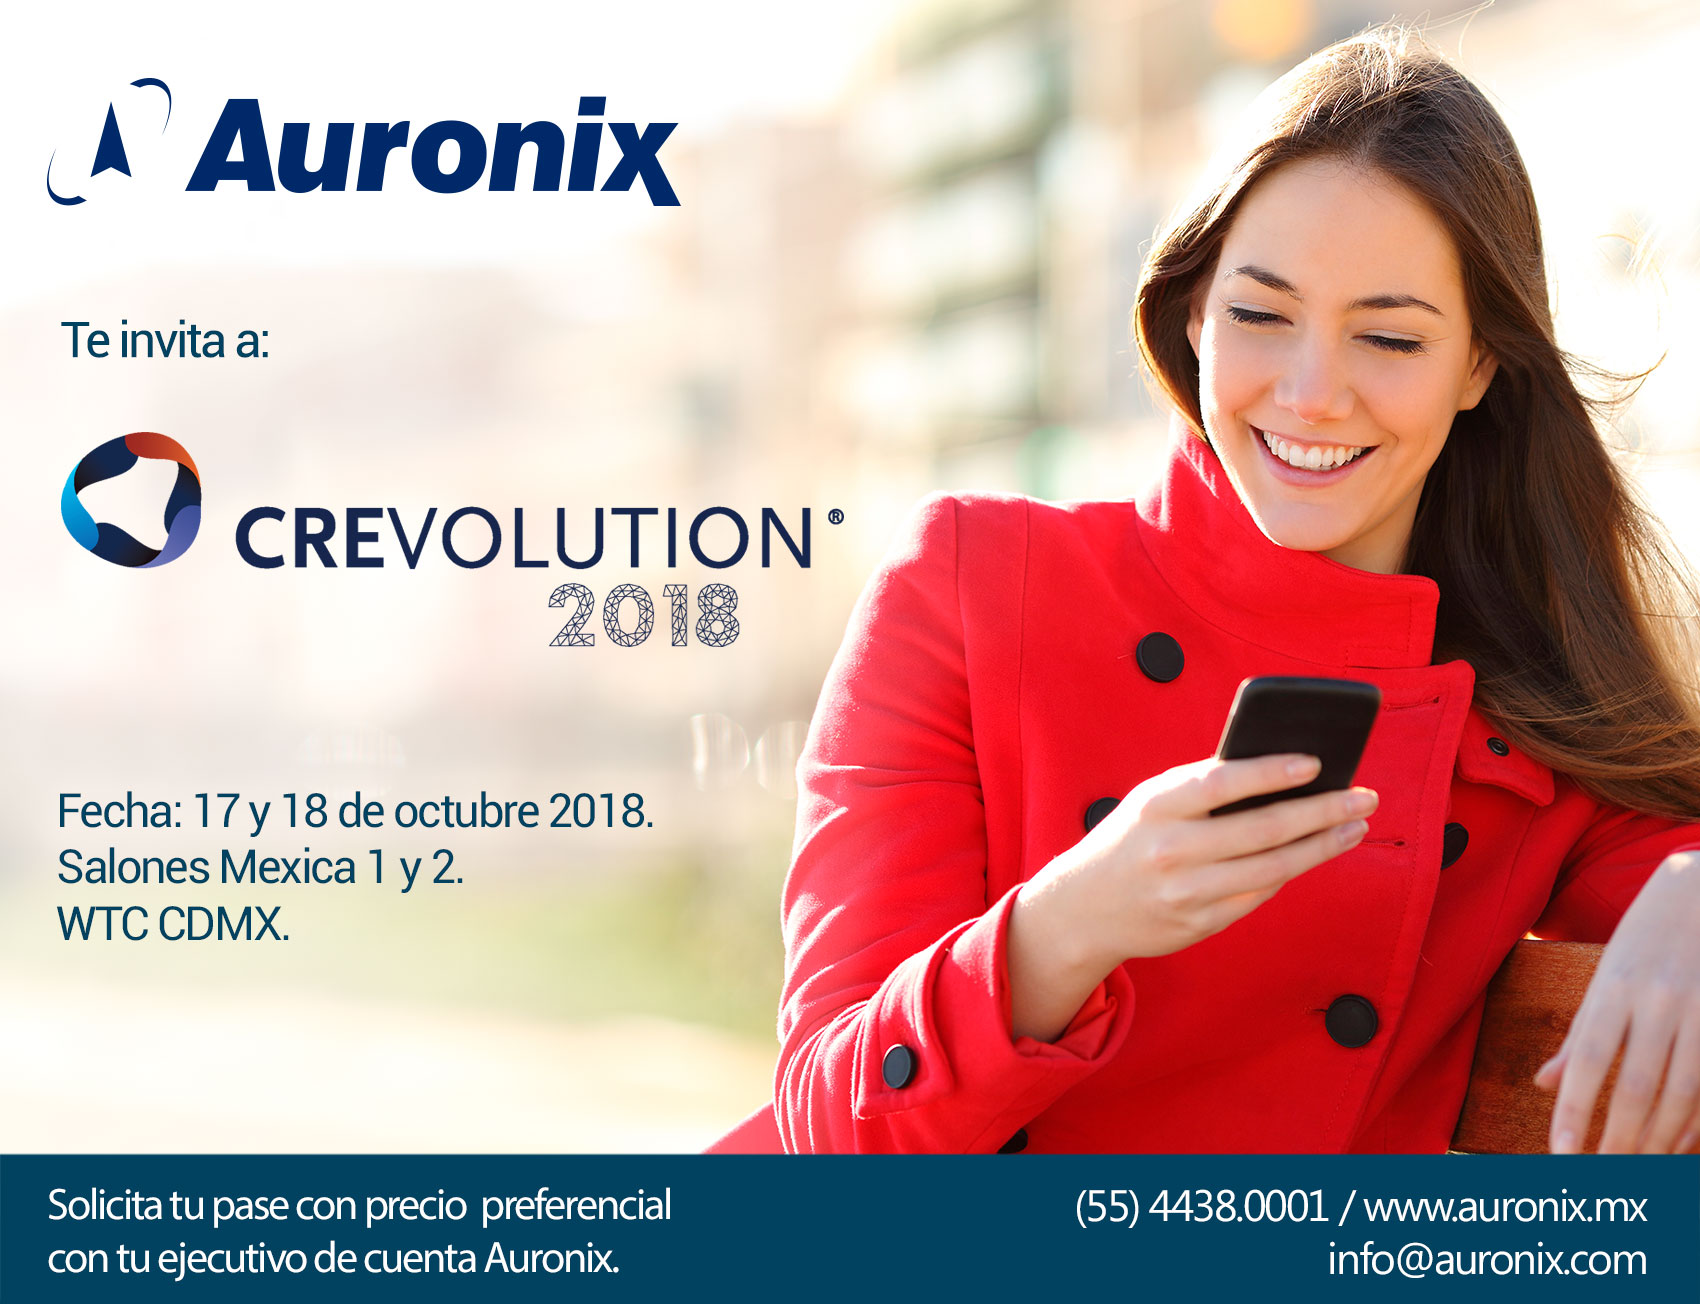 Auronix te invita a Crevolution 2018